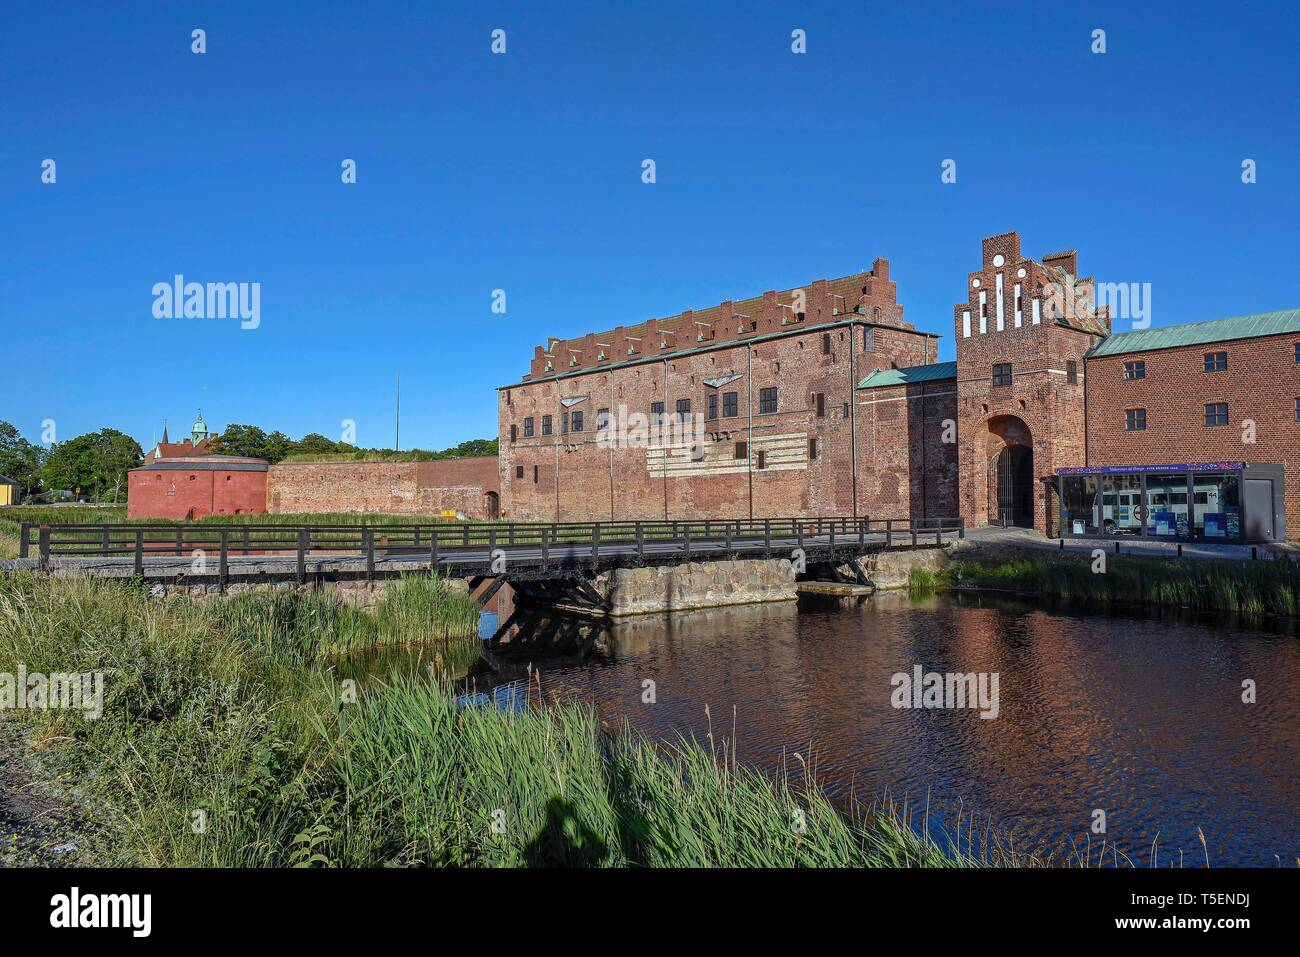 Malmo Castle Or Malmohus Slott In Malmo Was Built From 1537